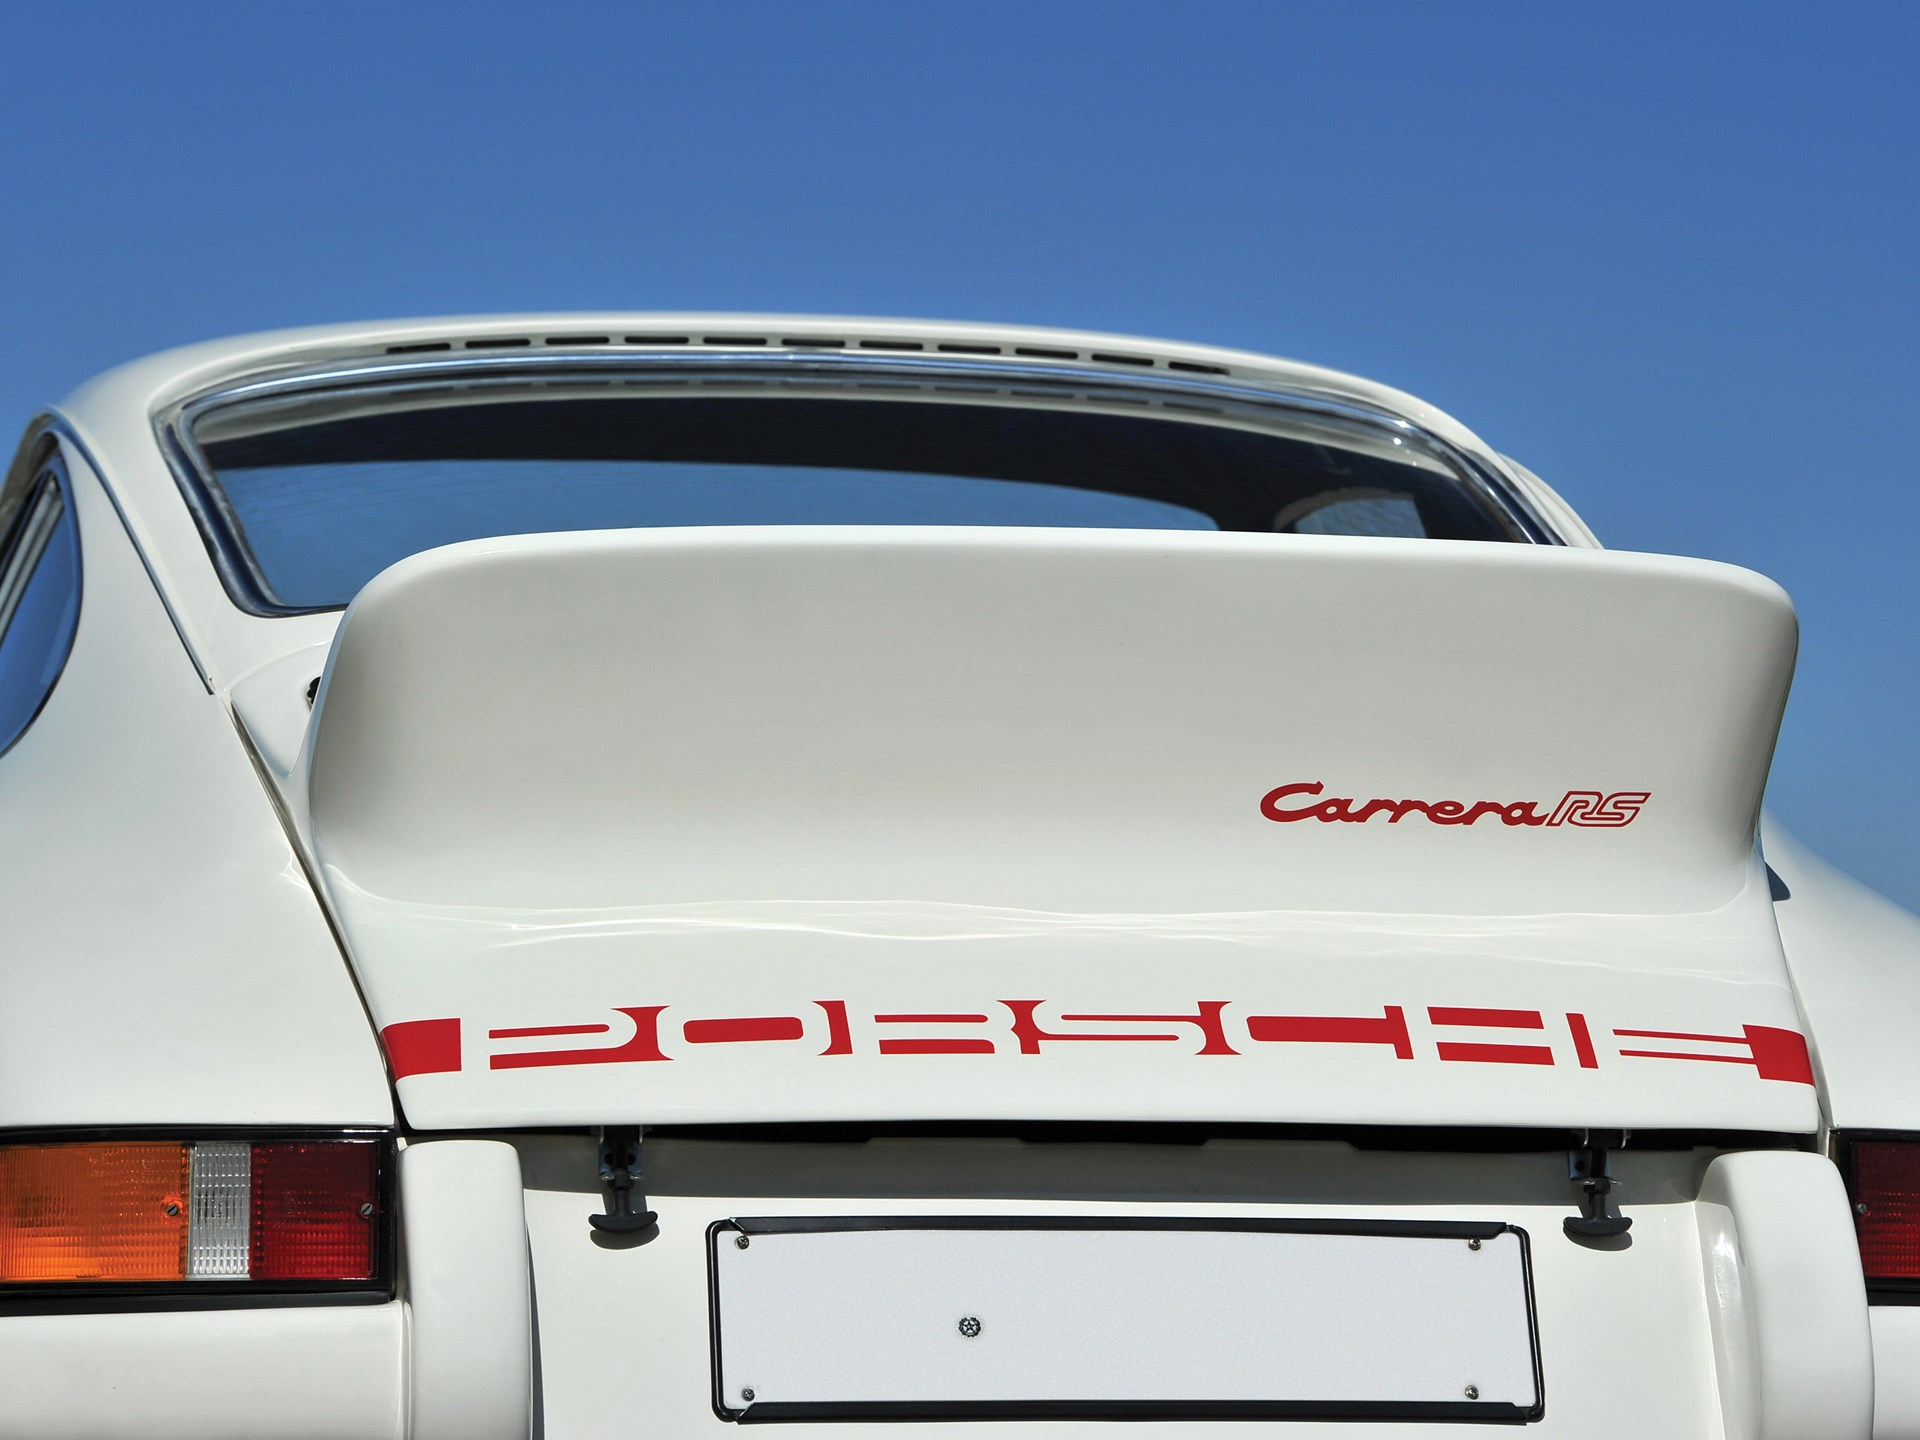 1973 Porsche 911 Carrera RS 2.7 Sport Lightweight